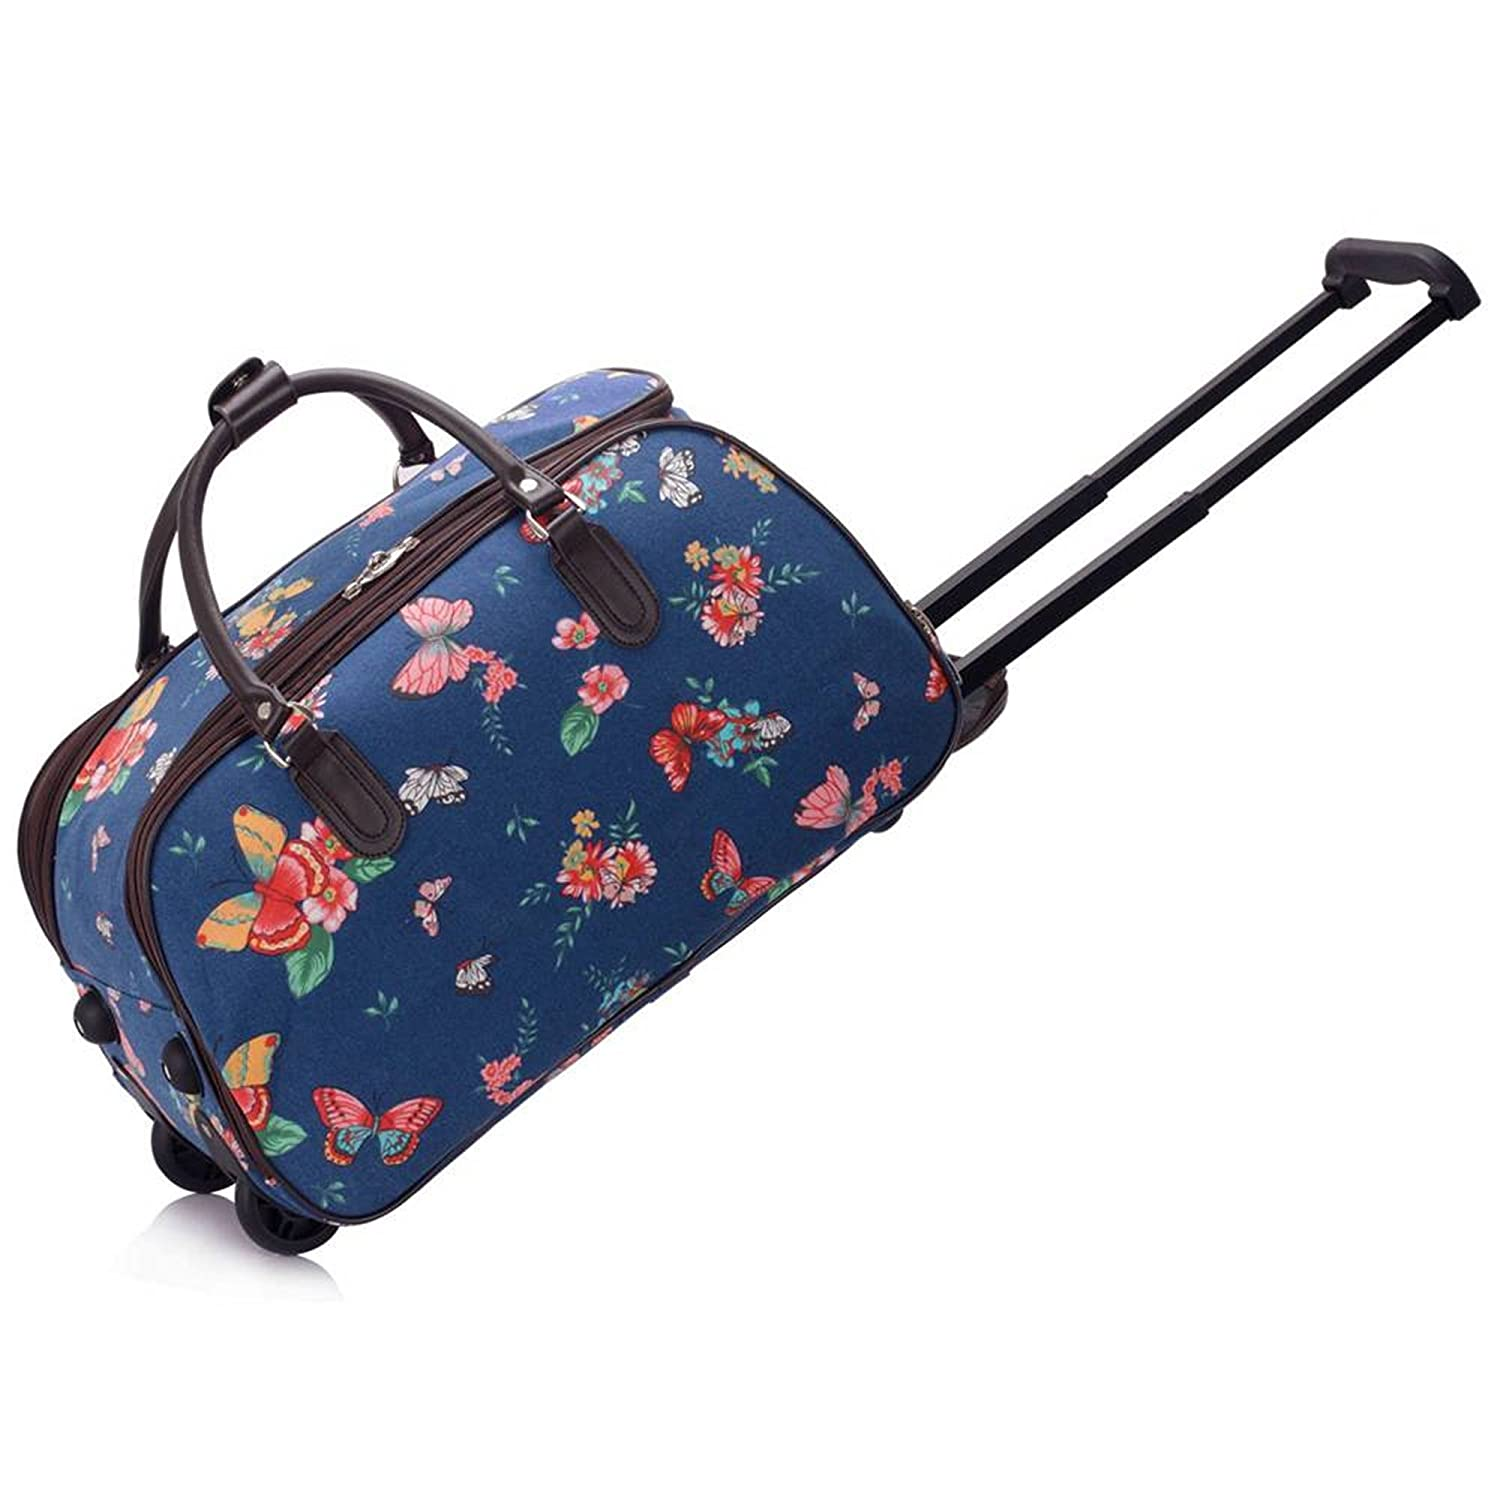 LeahWard Large Size Womens Quality Luggage Ladies Designer Canvas Butterfly Blue Owl Print Travel Bags With Wheel Suitcase Handbags 308